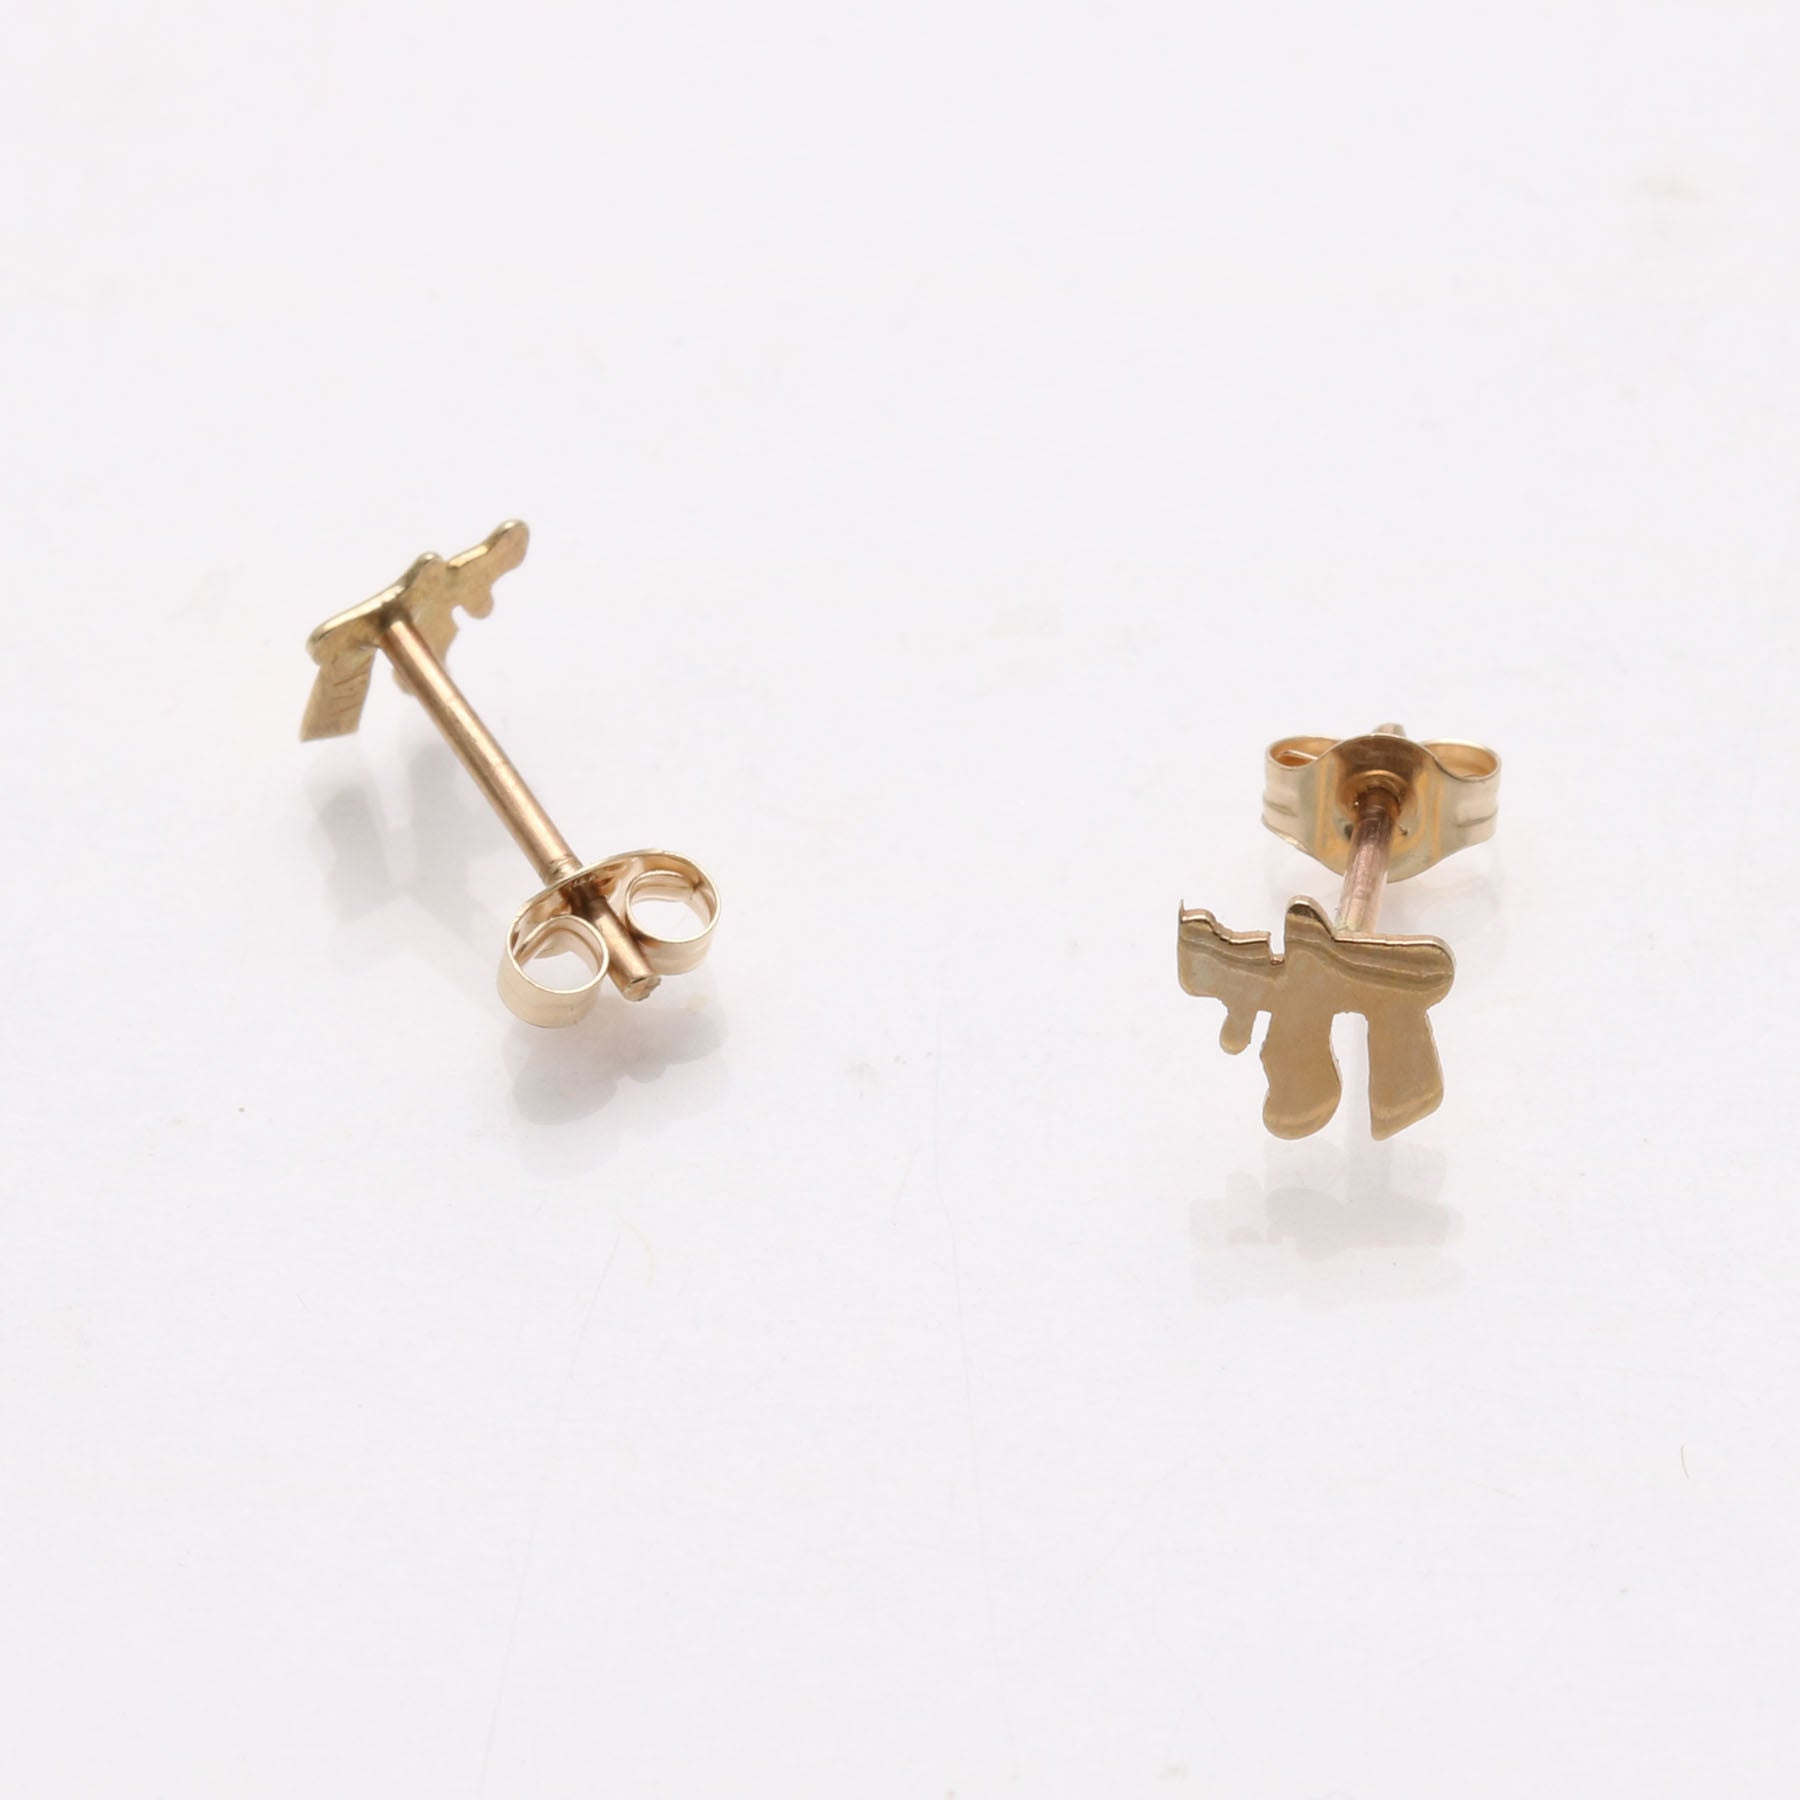 normal small bar sydney evan diamond earrings s single product gold stud yellow fresh earring cross website jewellry